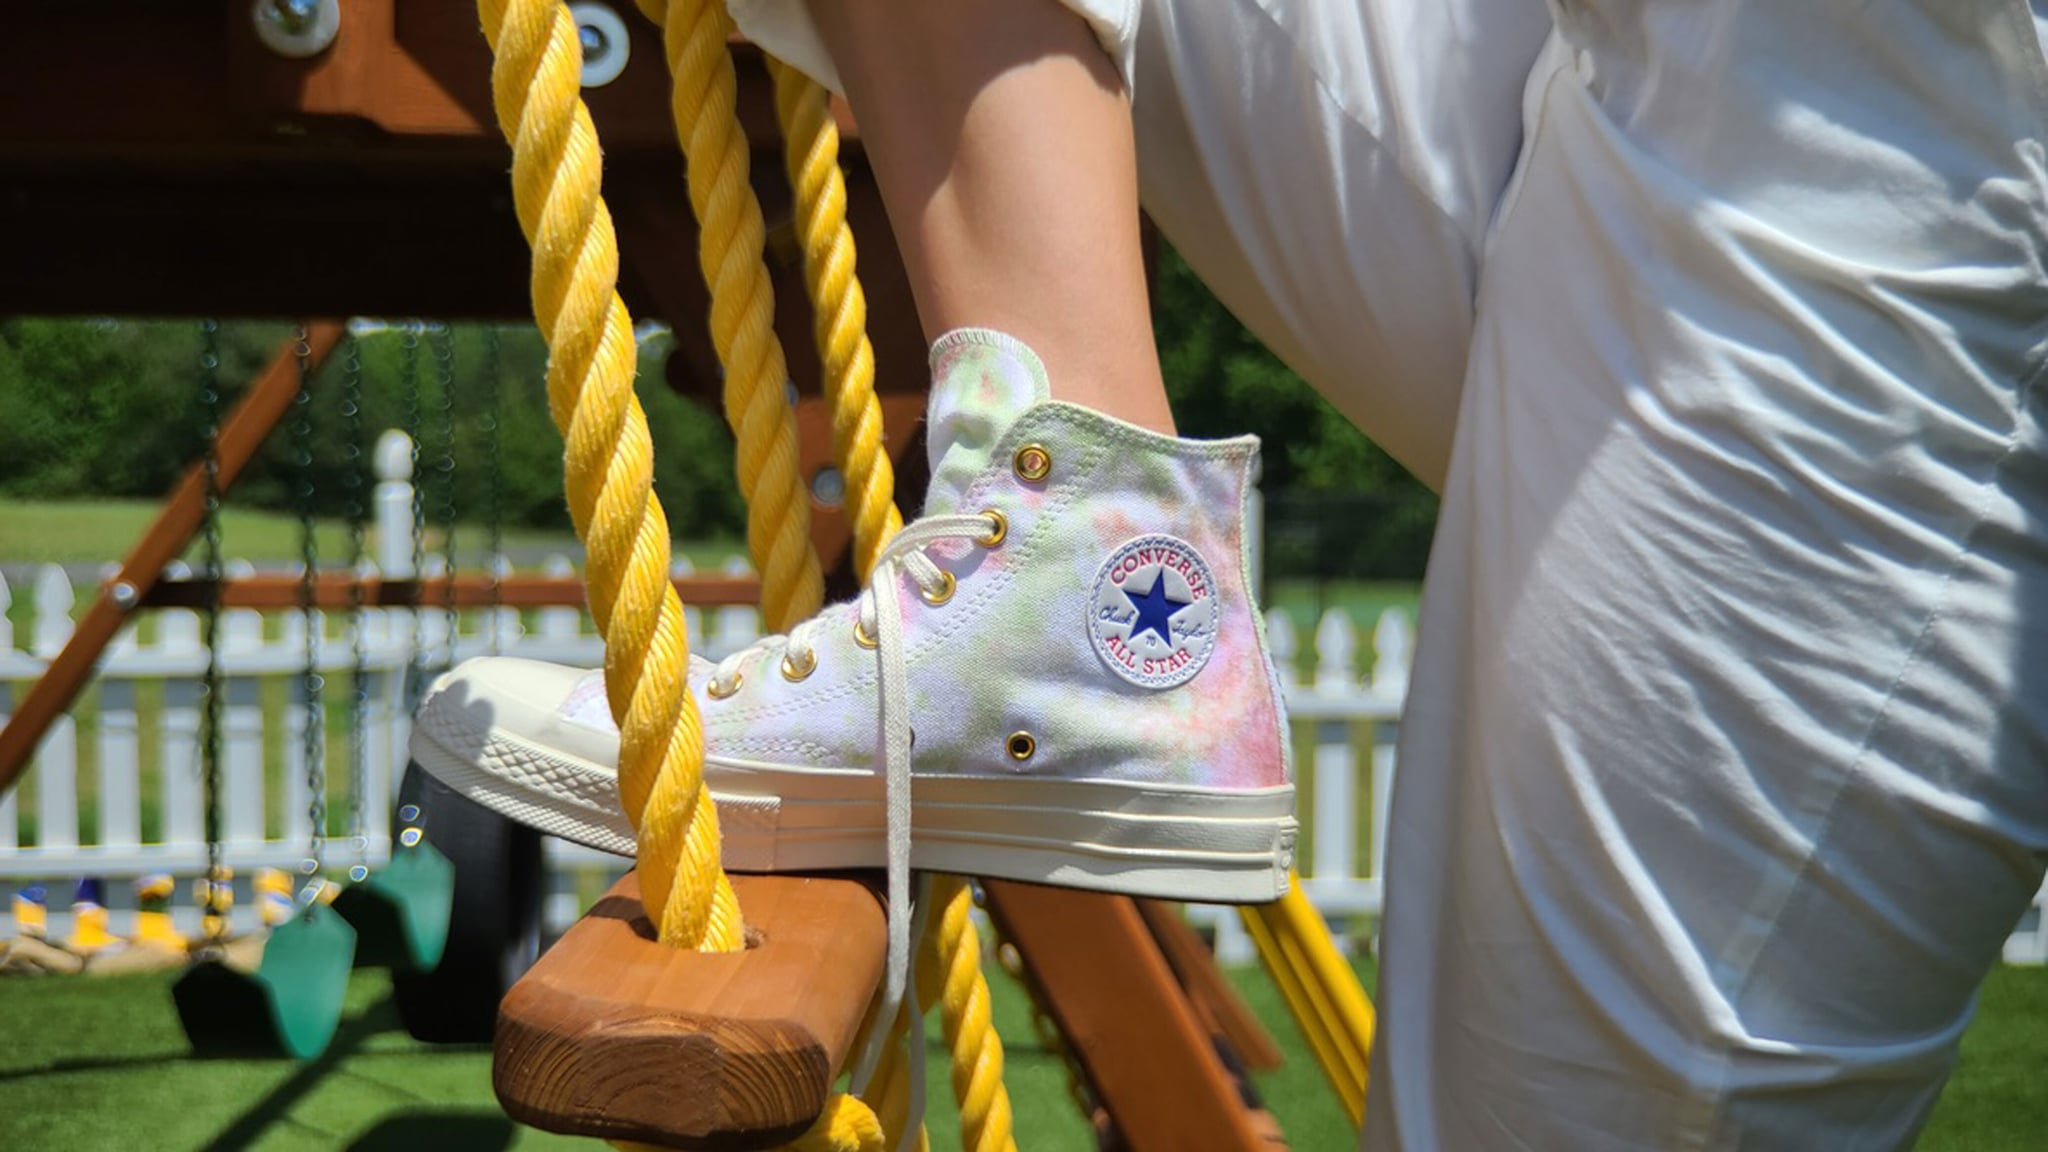 Millie Bobby Brown Dropped A Tie Dye Converse Collection Popsugar Fashion Uk Photo 4